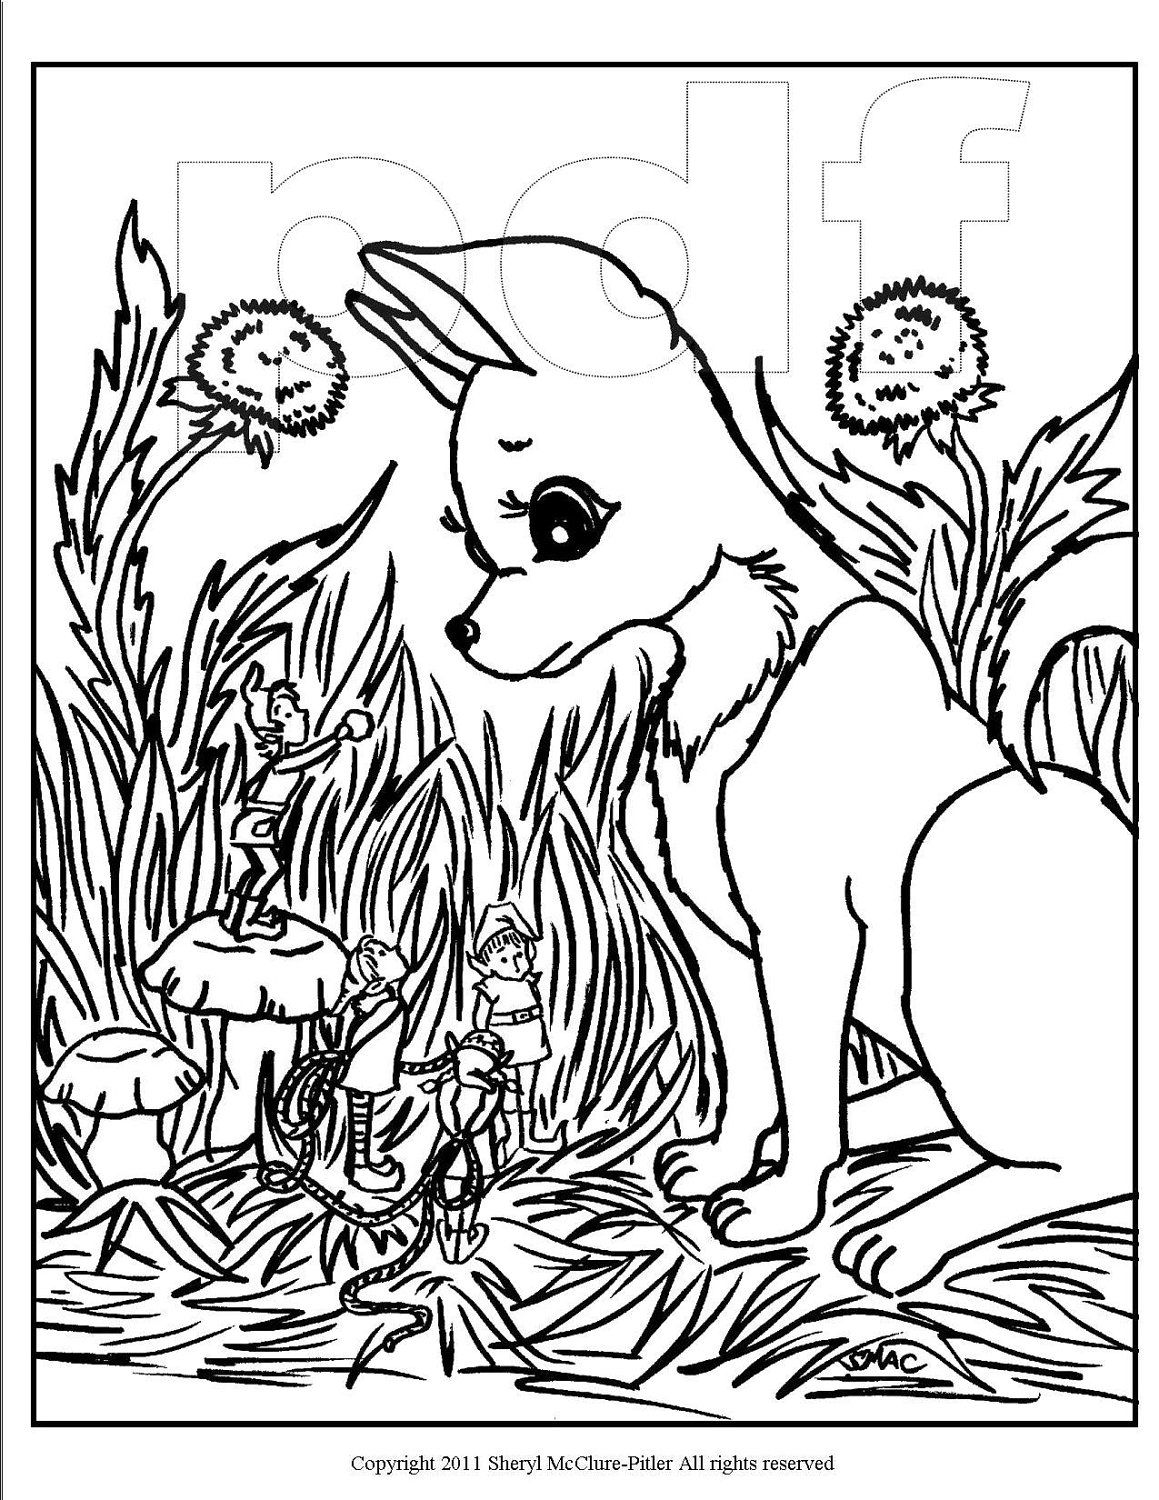 Beverly Hills Chihuahua Coloring Pages Coloring Pages Chihuahua